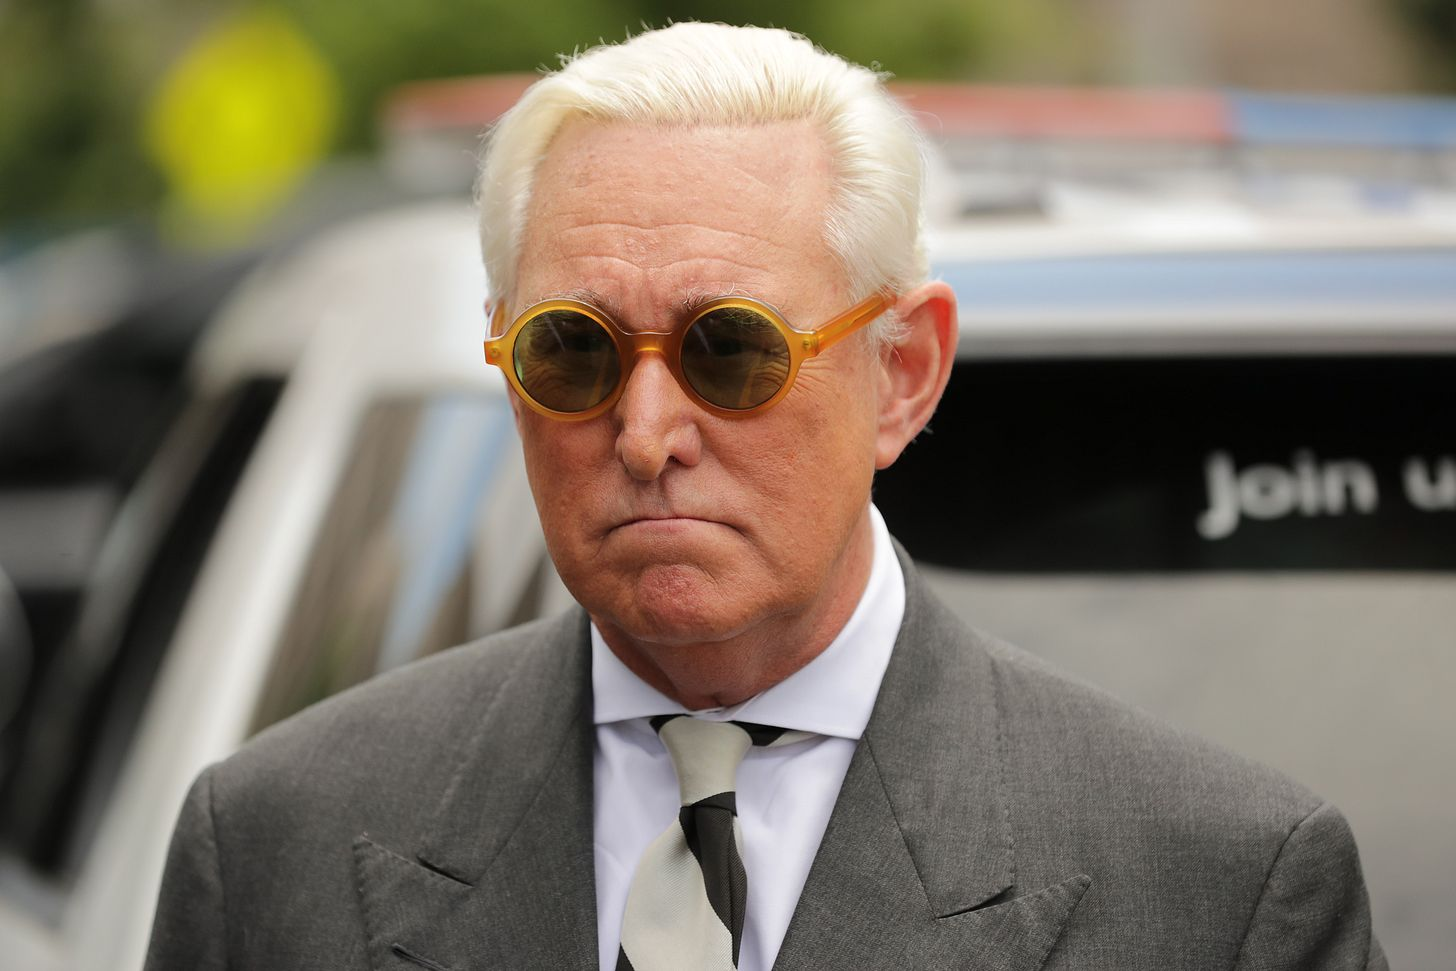 Remembering the Crimes of Roger Stone